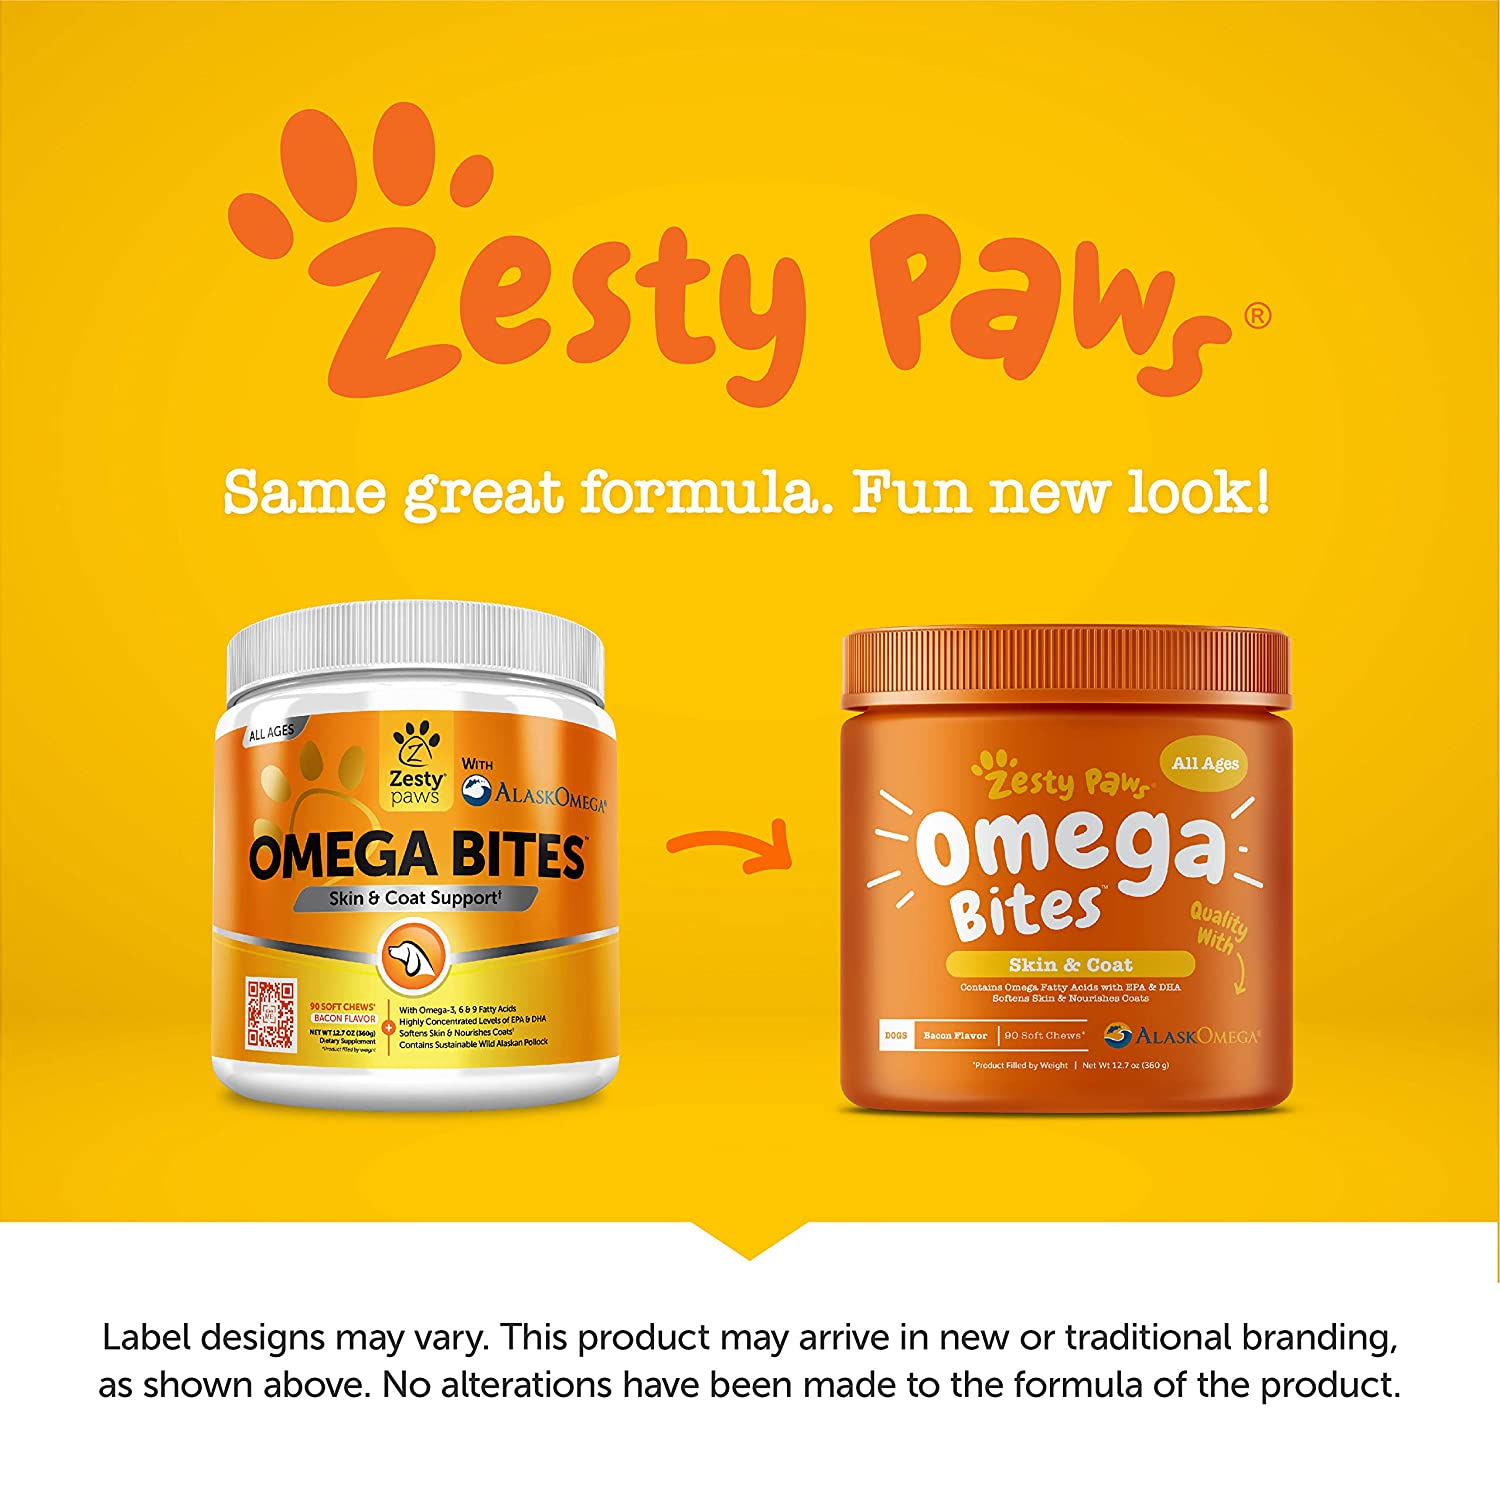 Zesty Paws Omega 3 Alaskan Fish Oil Chew Treats for Dogs – with AlaskOmega for EPA DHA Fatty Acids – for Shiny Coats Itch Free Skin – Hip Joint Support Heart Brain Health Bacon